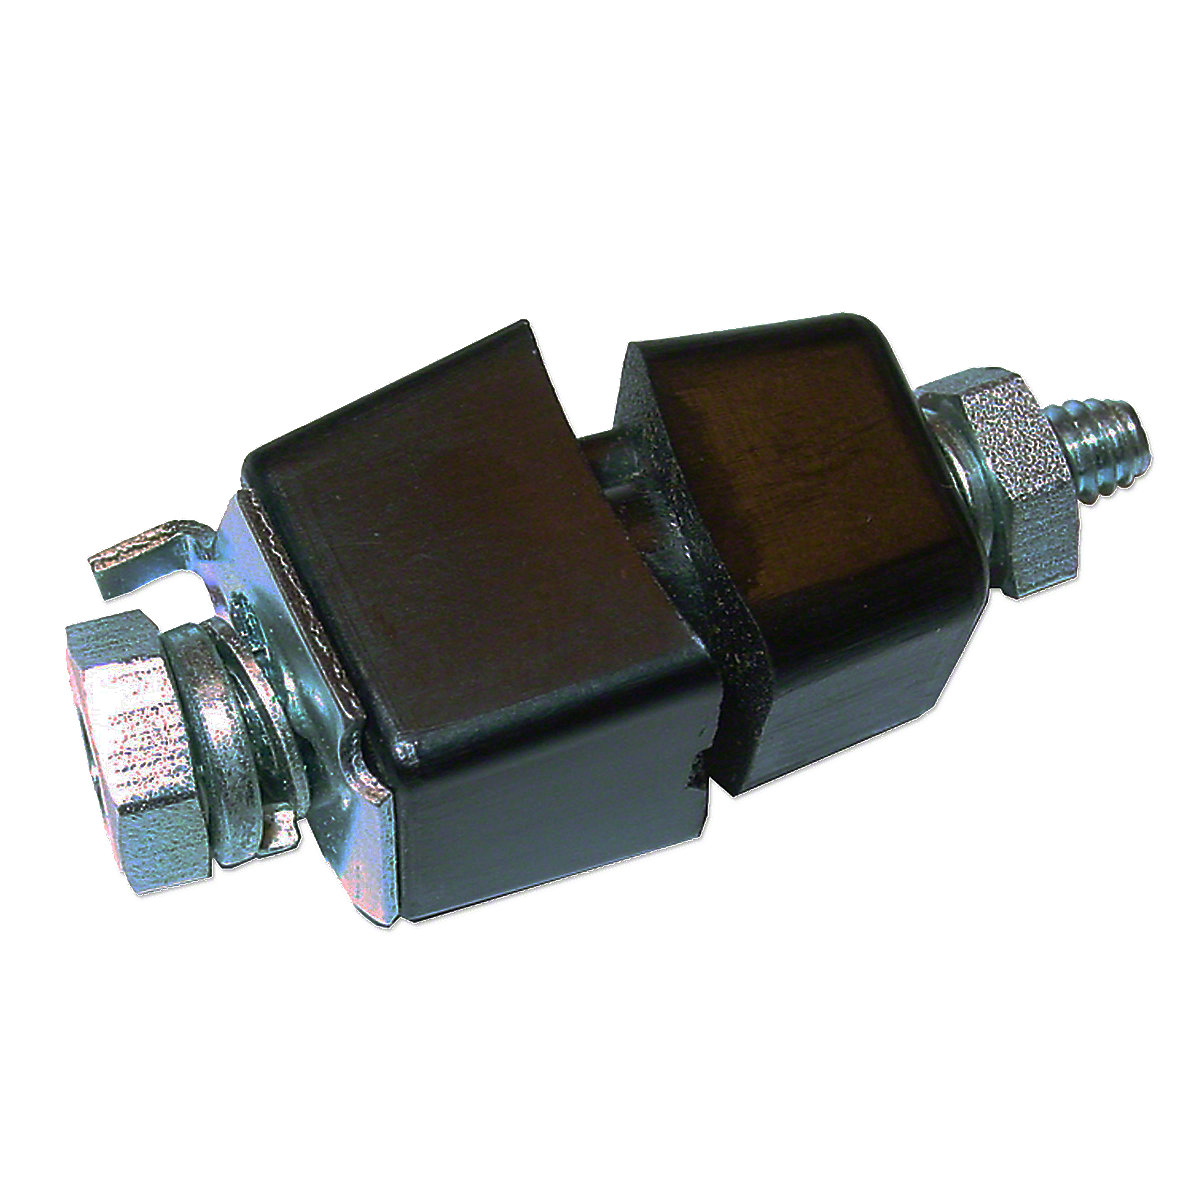 ABC500 Delco Distributor Terminal Insulator (Square Shoulder)